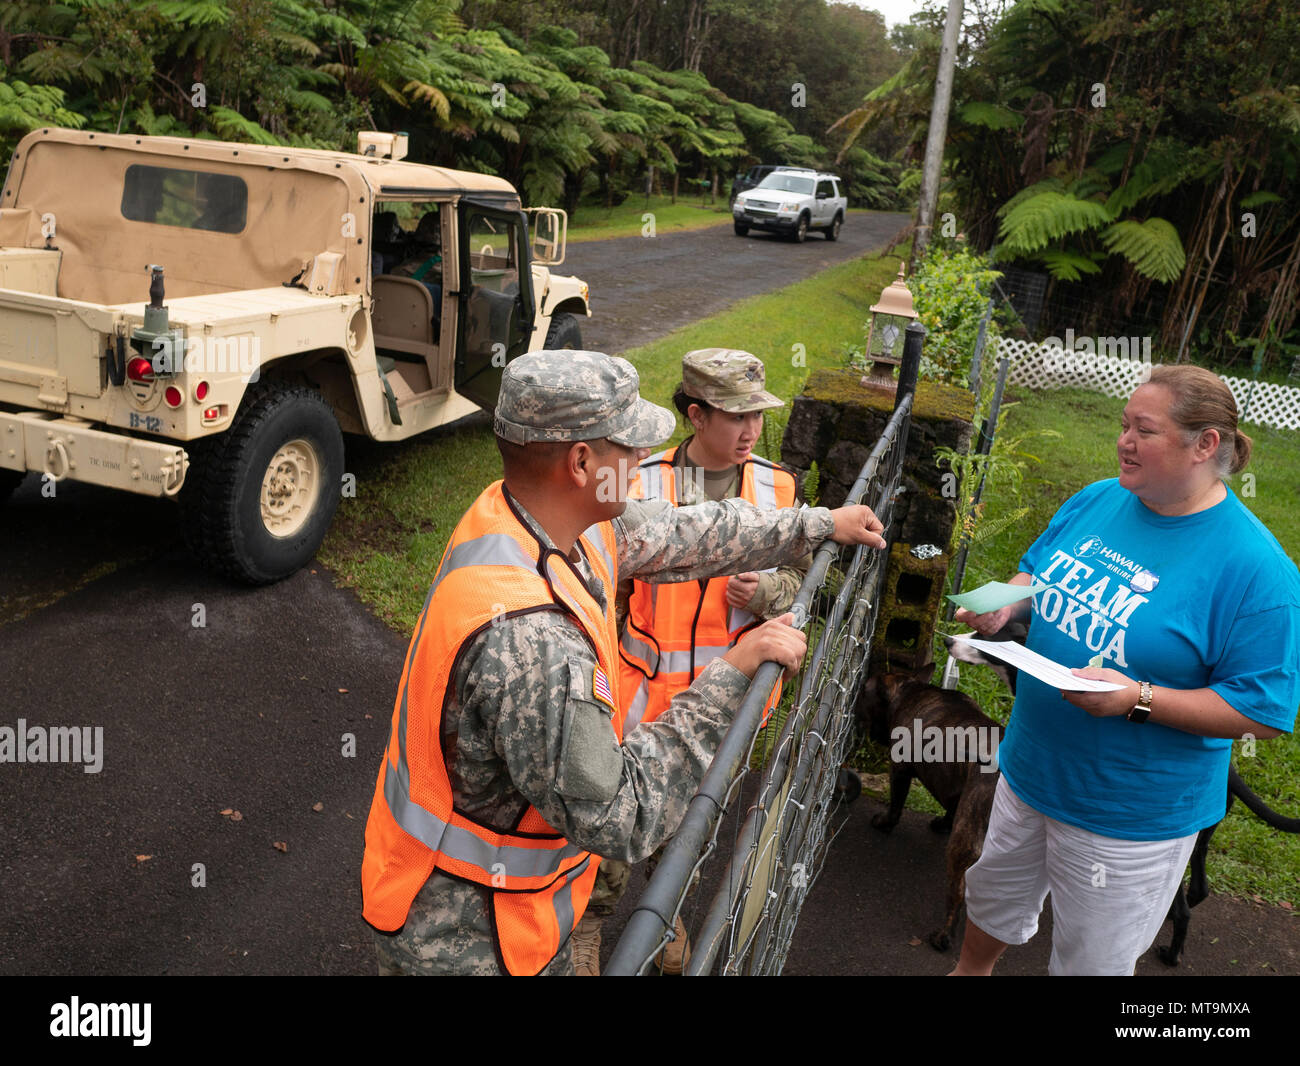 Sgt. Ambrose Leon and Spc. Anyanee Sangchan, representatives of Task Force Hawaii, speak to Kina Sai, a resident of the Volcano community May 17, 2018, at Upper Puna District, Hawaii. Residents have been visited by guardsmen and members of County of Hawaii Civil Defense as a measure to ensure the community is informed about the adverse conditions which may occur, due to the ongoing volcanic activity. (U.S. Air National Guard photo by Senior Airman John Linzmeier) - Stock Image